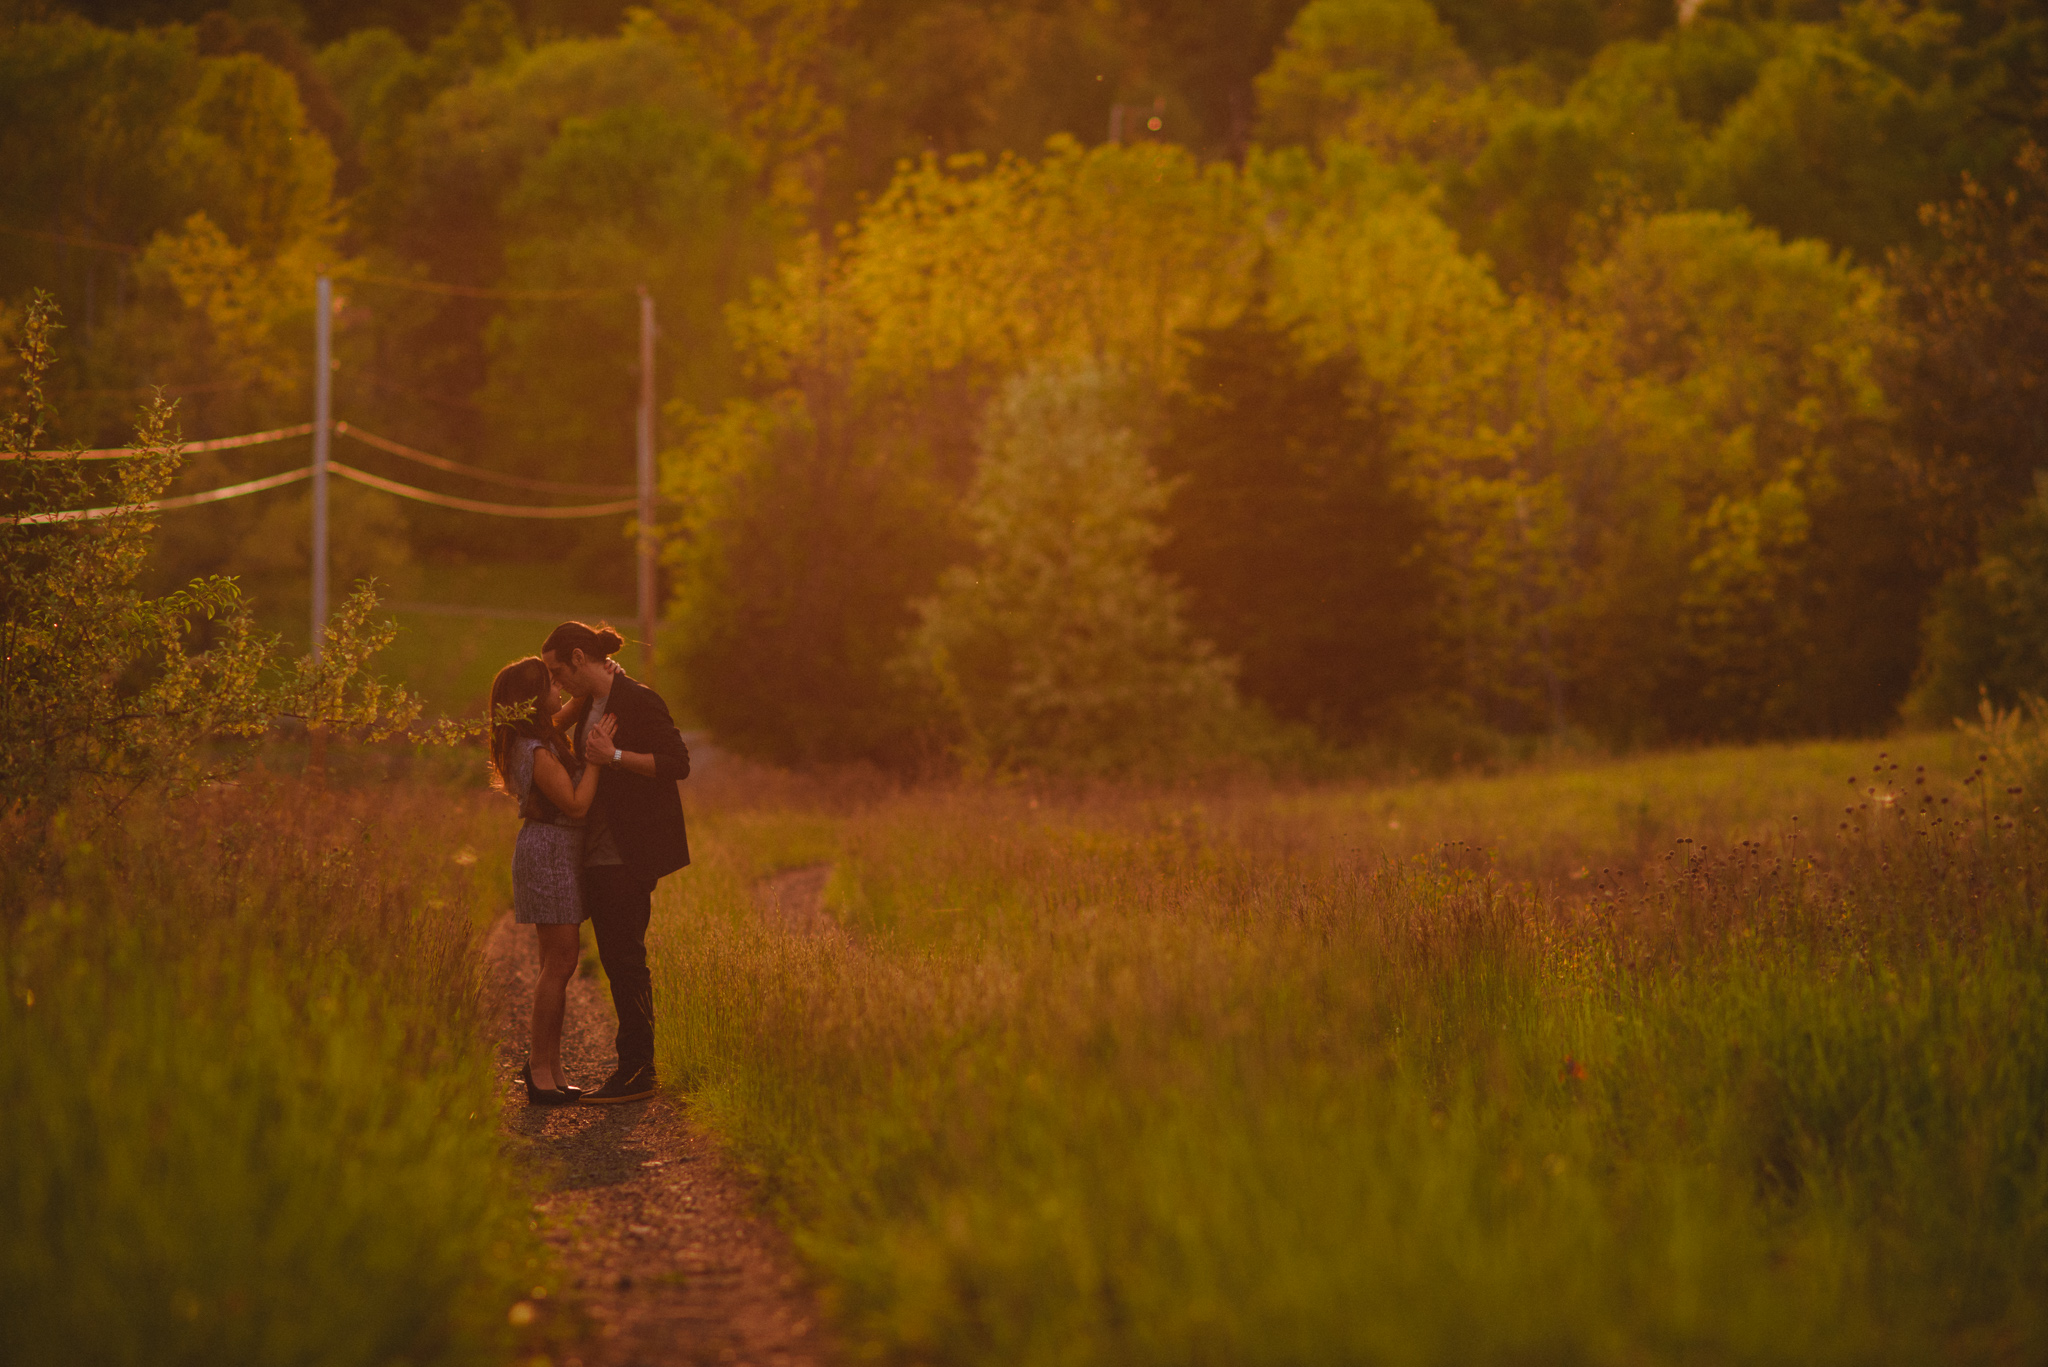 And this is why I love the golden hour in New Paltz. The colors are like nowhere else and make everything extra romantic.